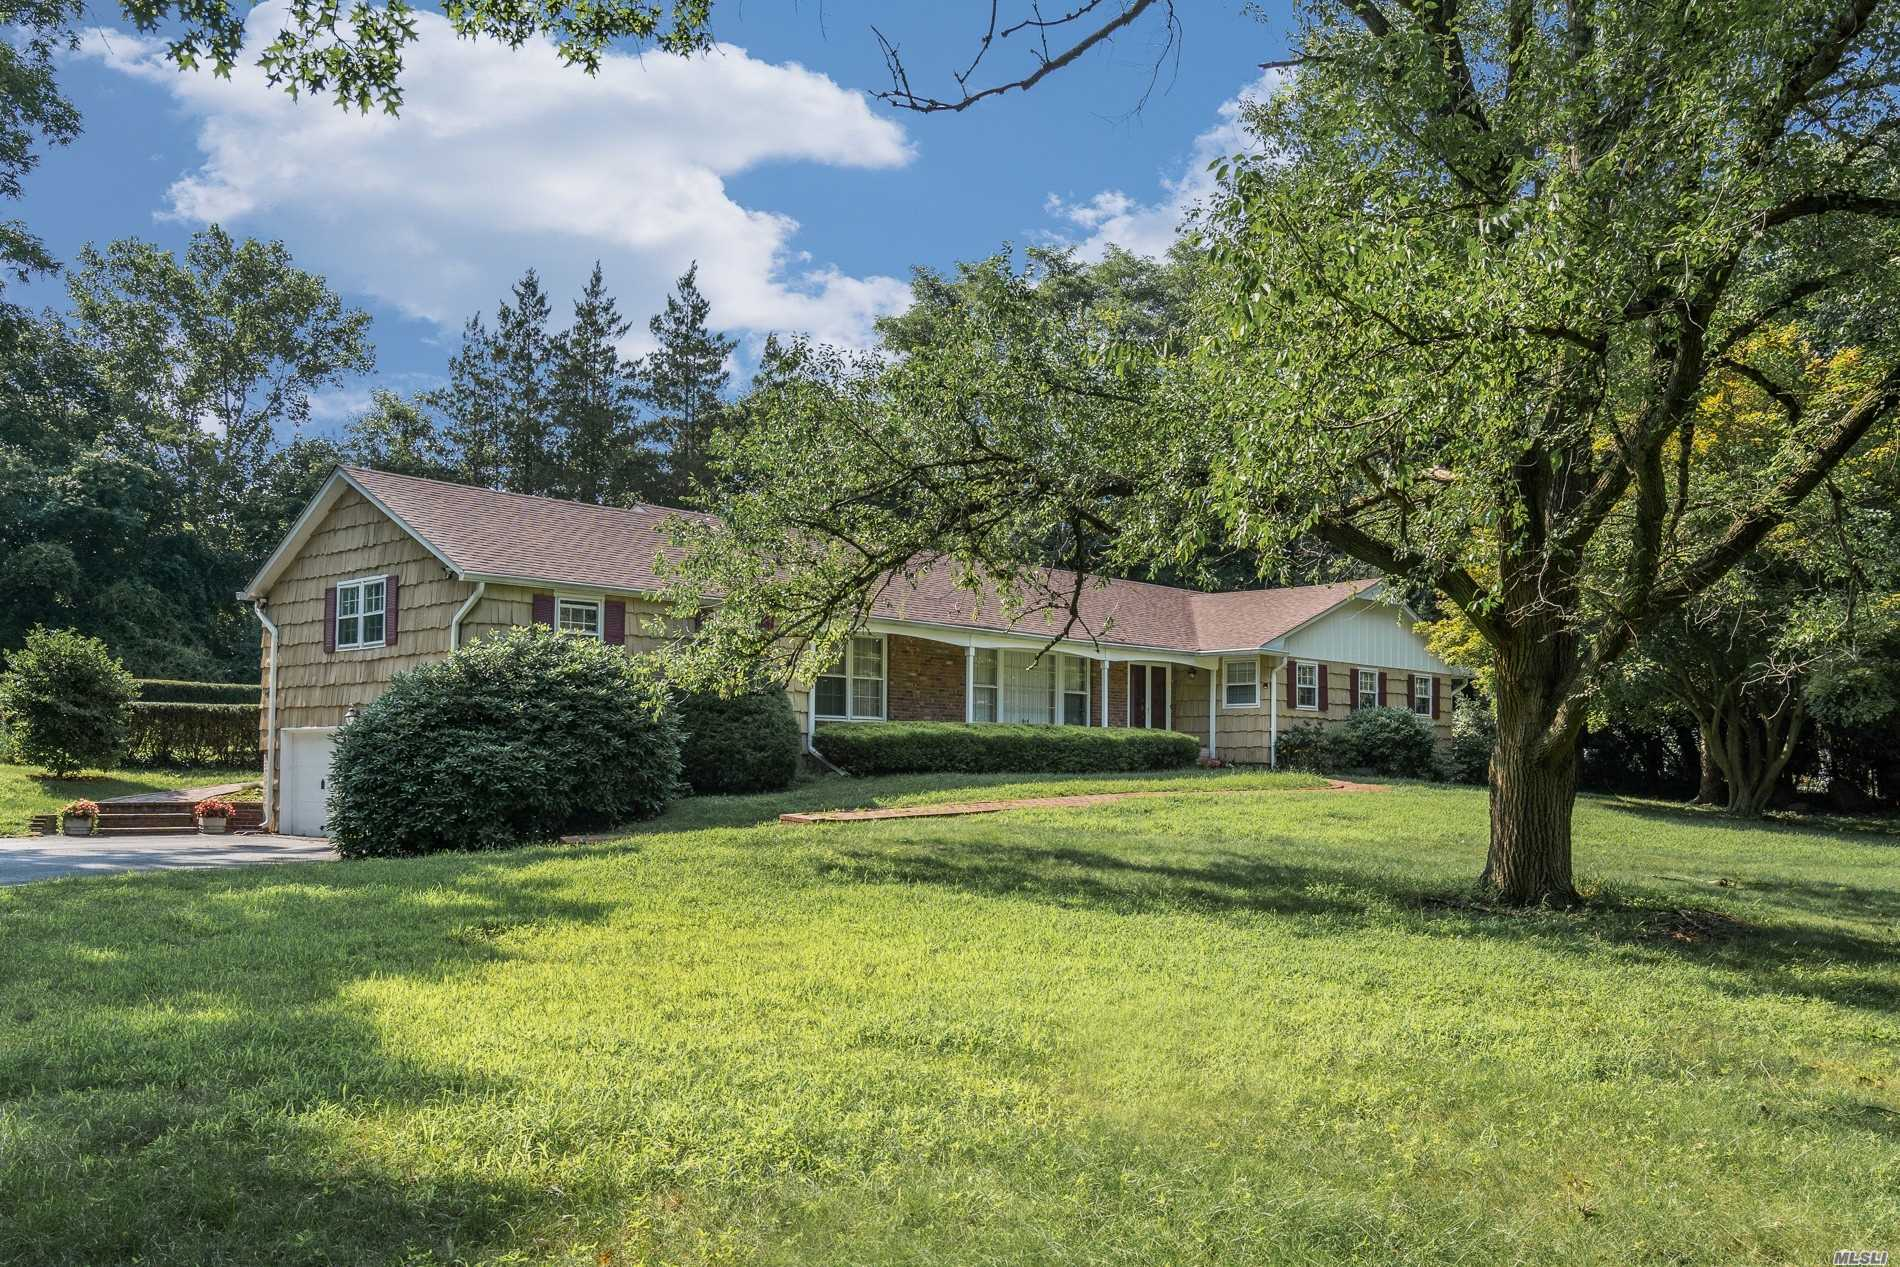 Huge Rooms Beautiful Expanded Ranch Perfect For Entertaining On 1 Acre In Fort Salonga, 4 Bedrooms, 2.5 Baths, Living Room, Formal Dining Room, Den W/Fireplace, Large Eik, Bonus Room And Screened In Porch. 2 Car Garage. New Roof, Full Basement. Close To Beaches, Golf And Shopping.